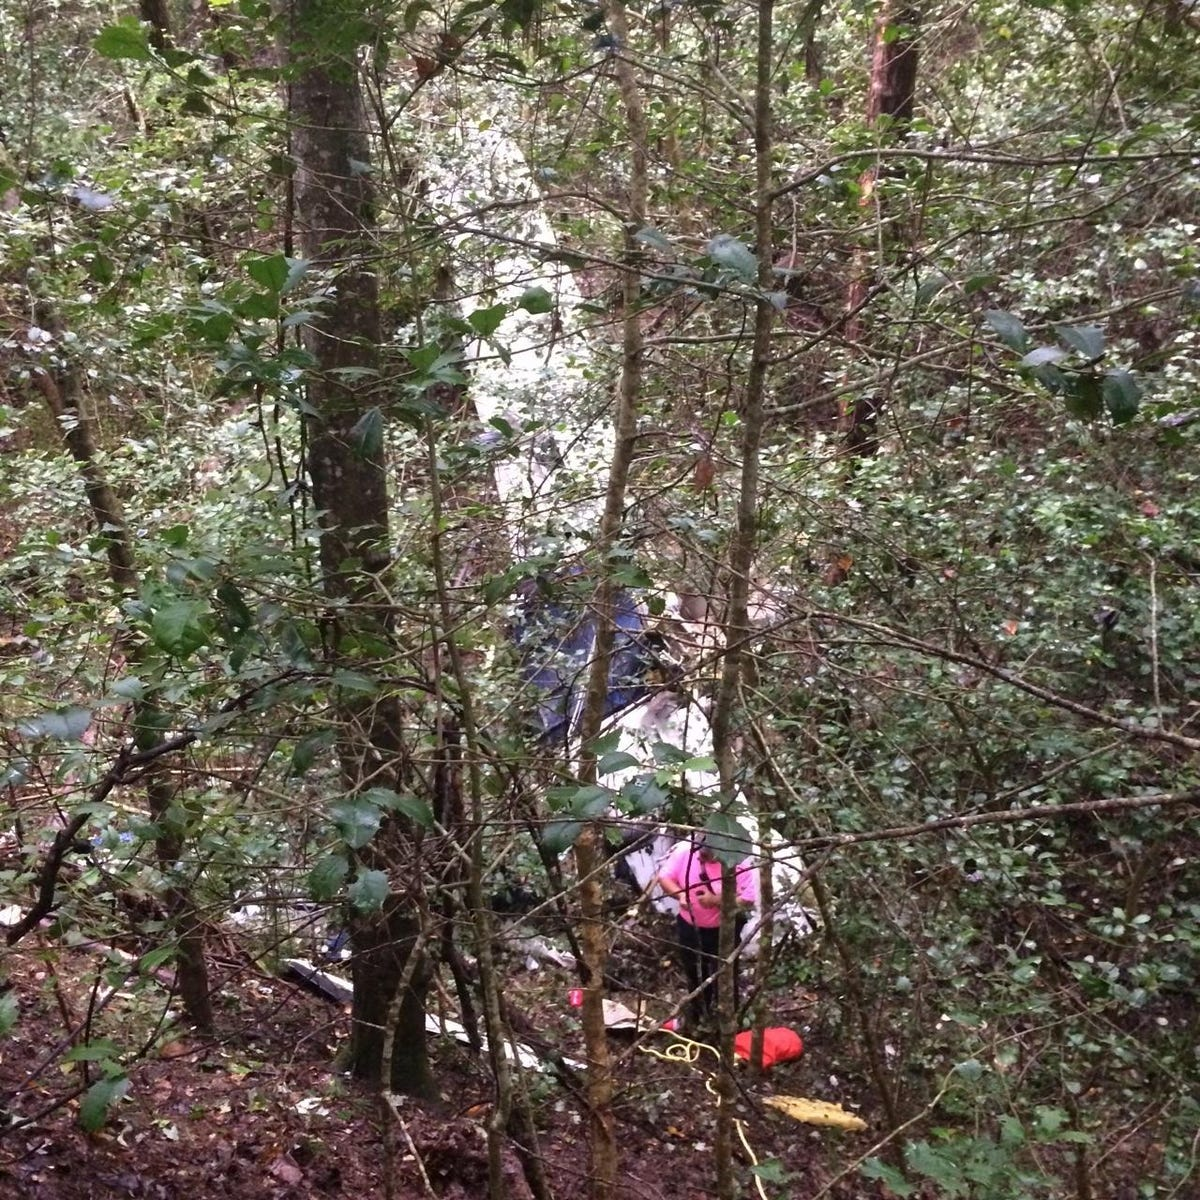 NTSB issues preliminary report on Westminster plane crash